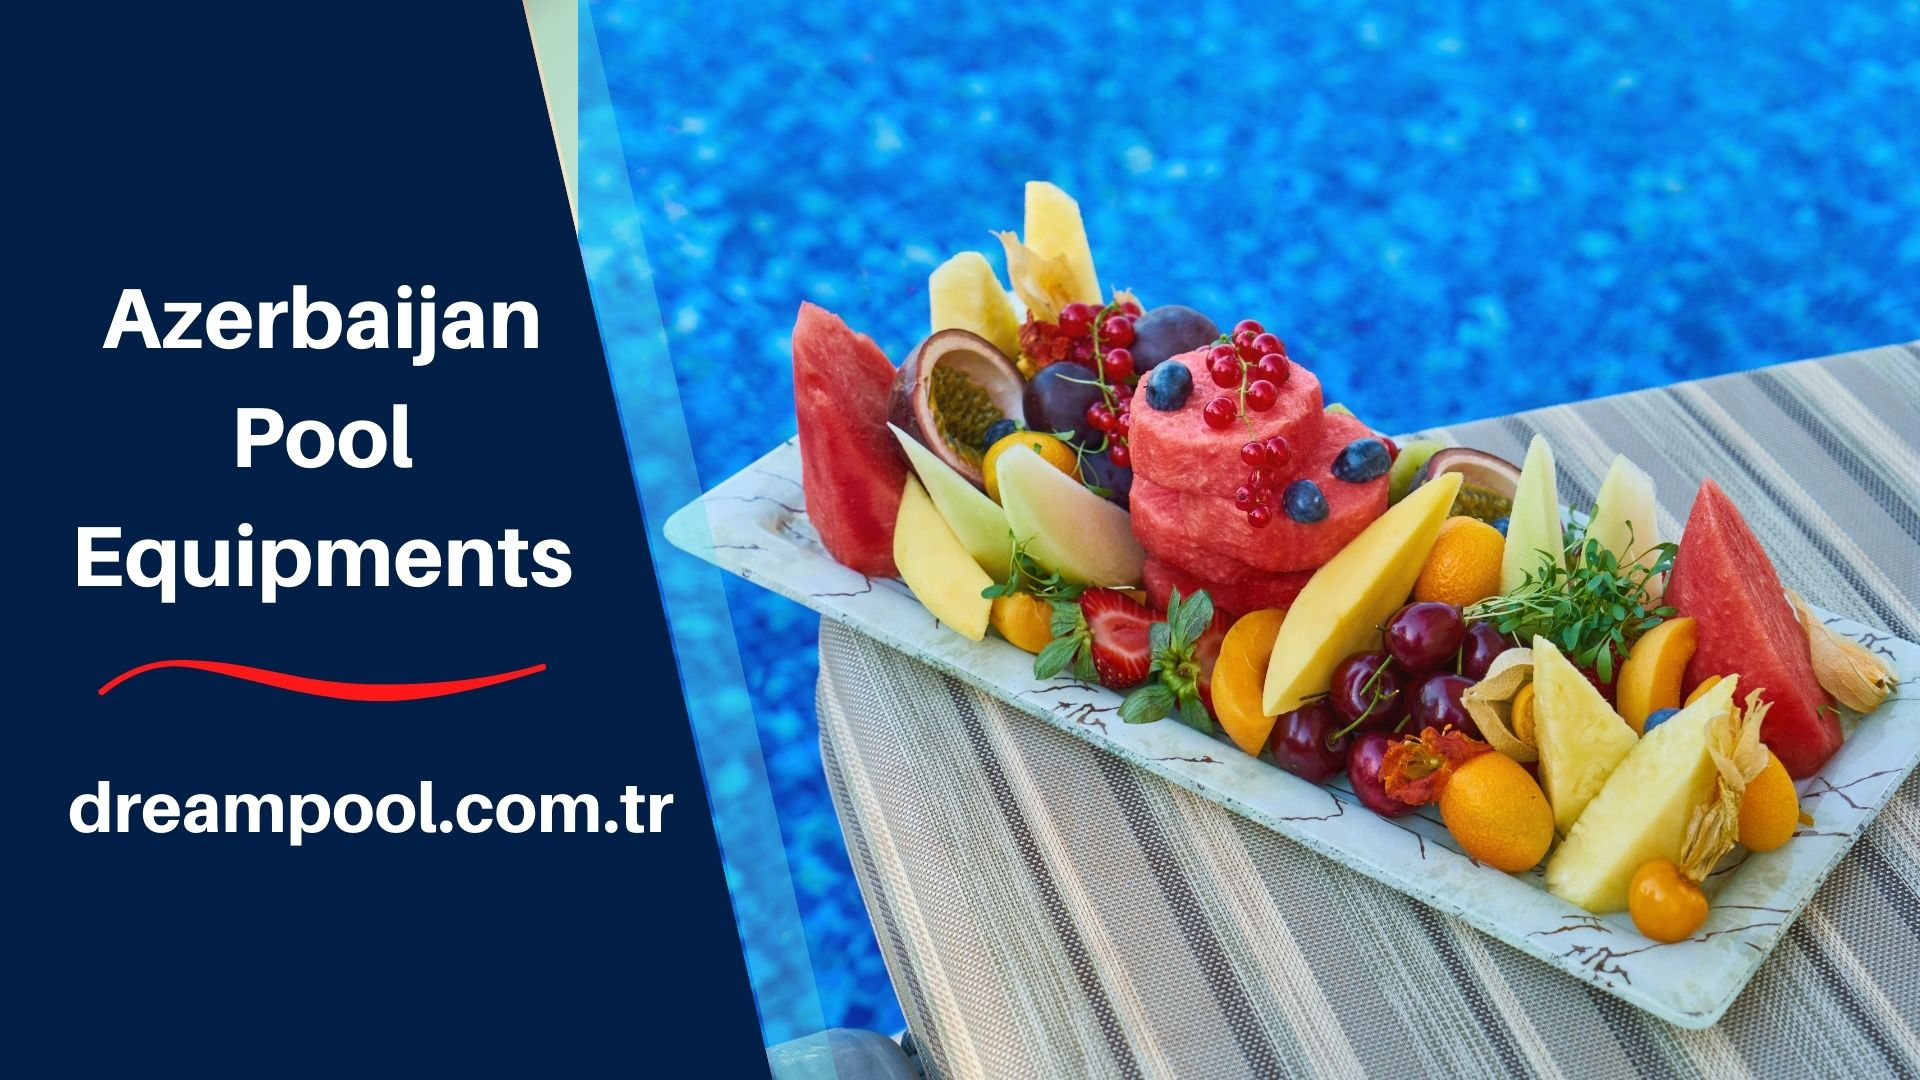 azerbaijan-pool-equipments